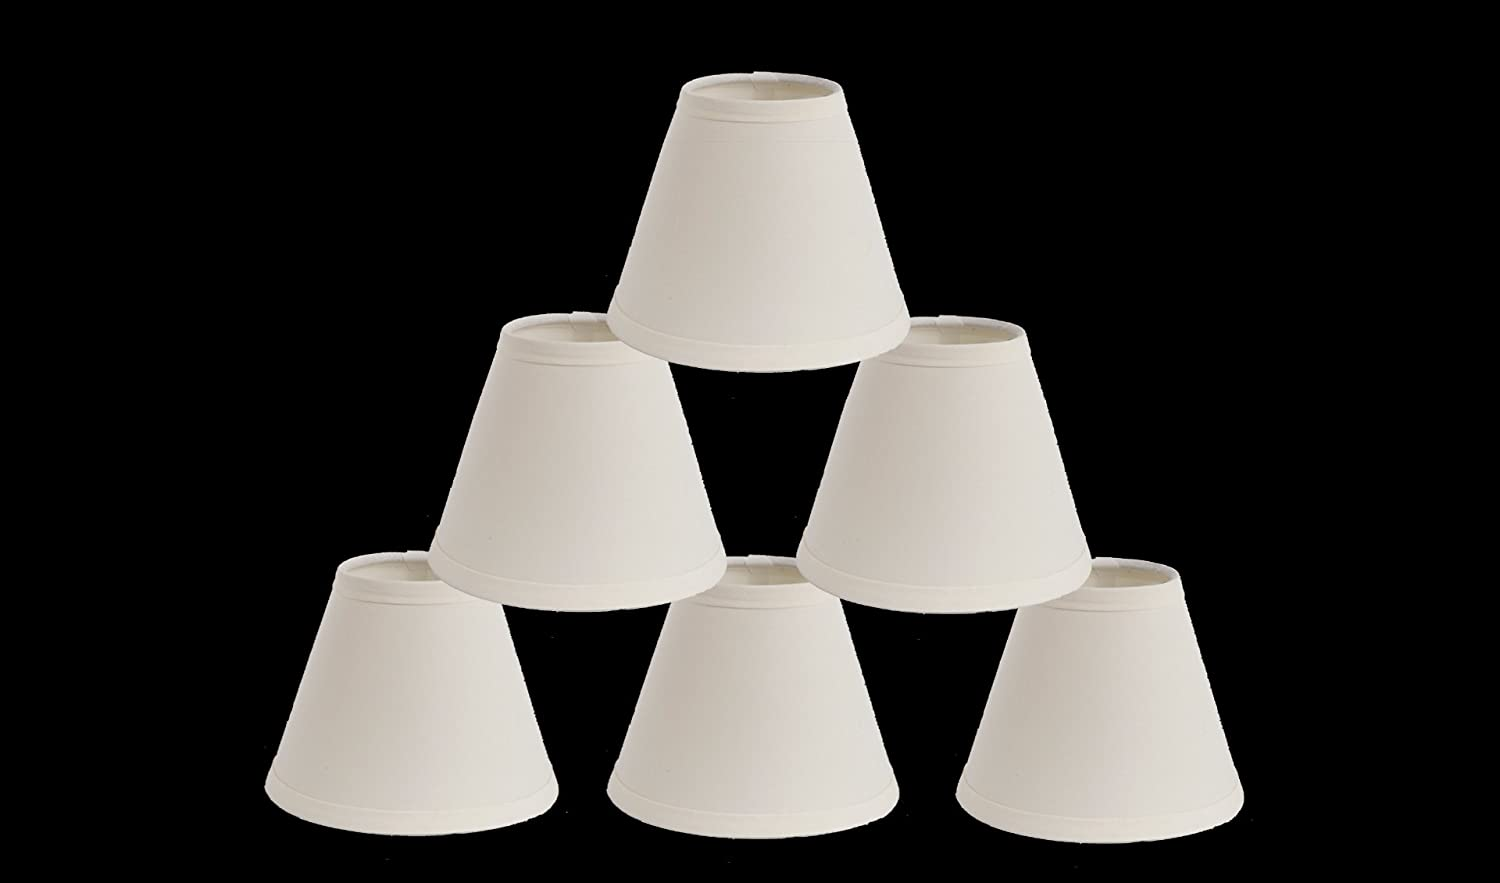 Urbanest 1100327c Mini Chandelier Lamp Shades 6-inch, Cotton ...